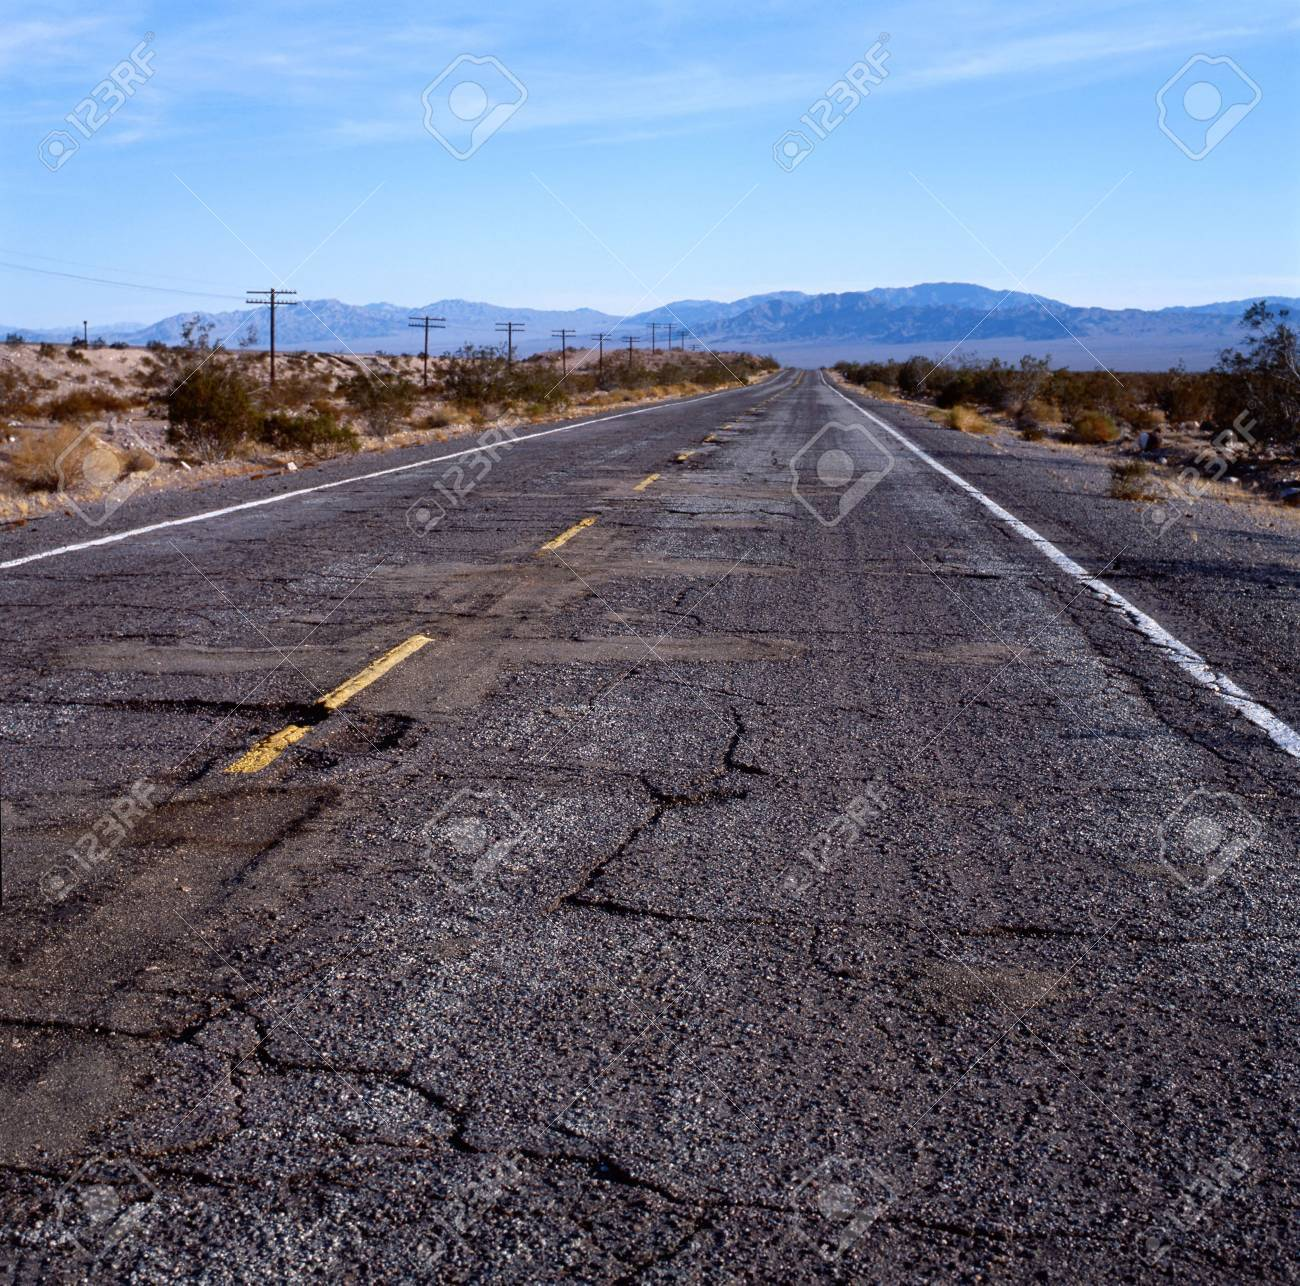 "Pontiac façon ""Mad Max"" 1/24 avec base/décor  5982184-The-old-Route-66-with-damaged-pavement-in-the-Mohave-desert-California-U-S-A--Stock-Photo"